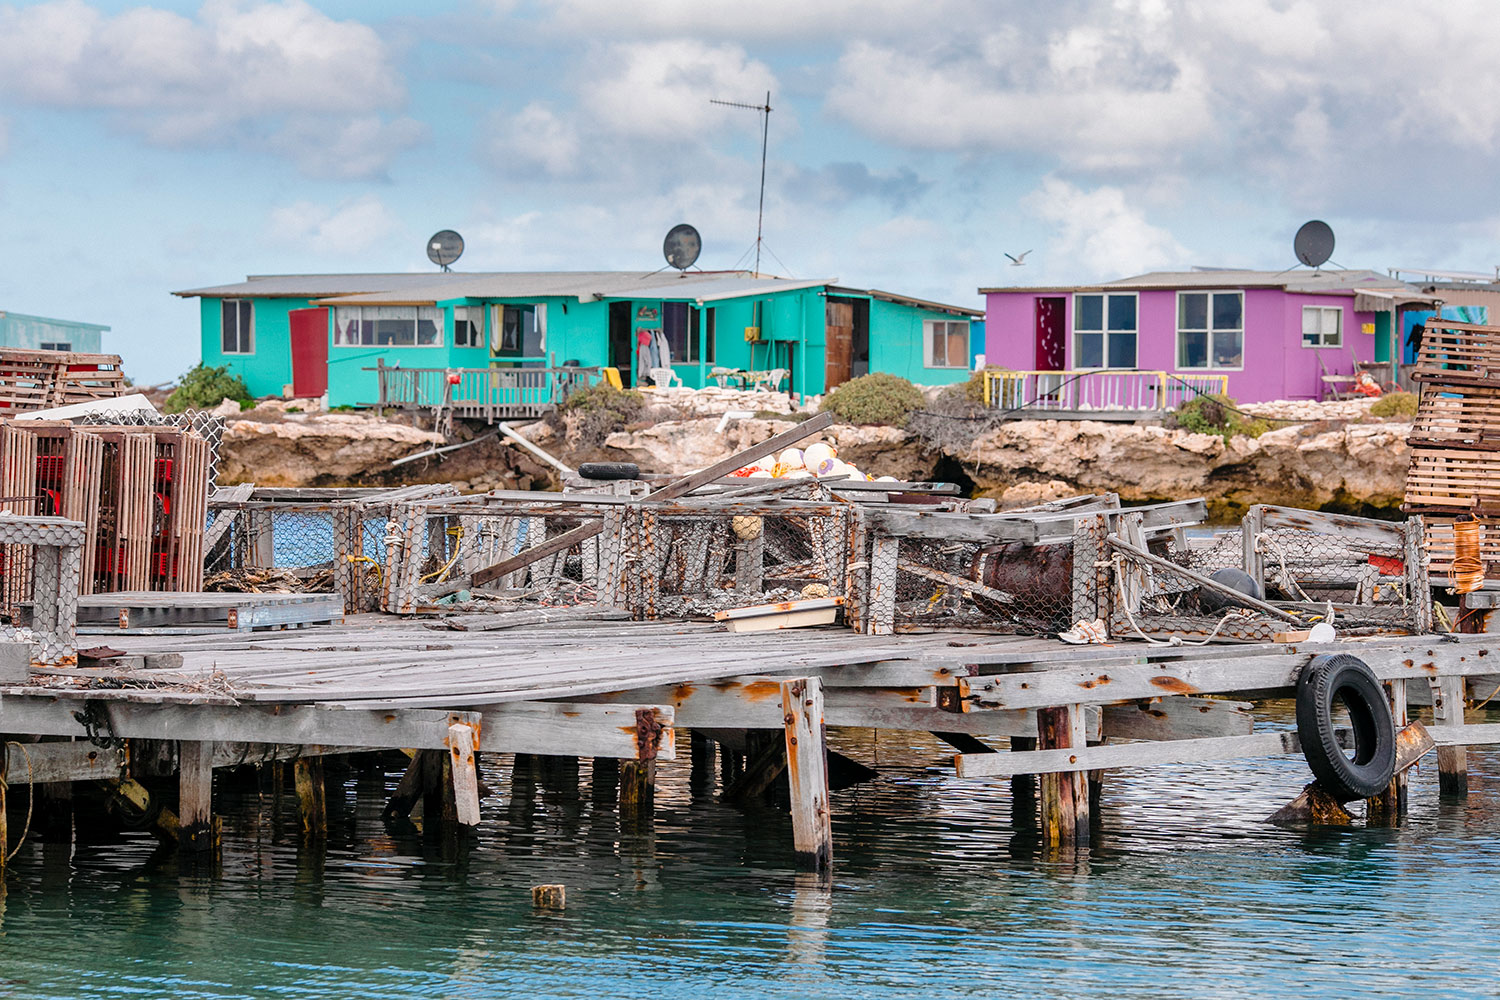 Fishing shacks, craypots and old jetty at the Abrolhos Islands Western Australia